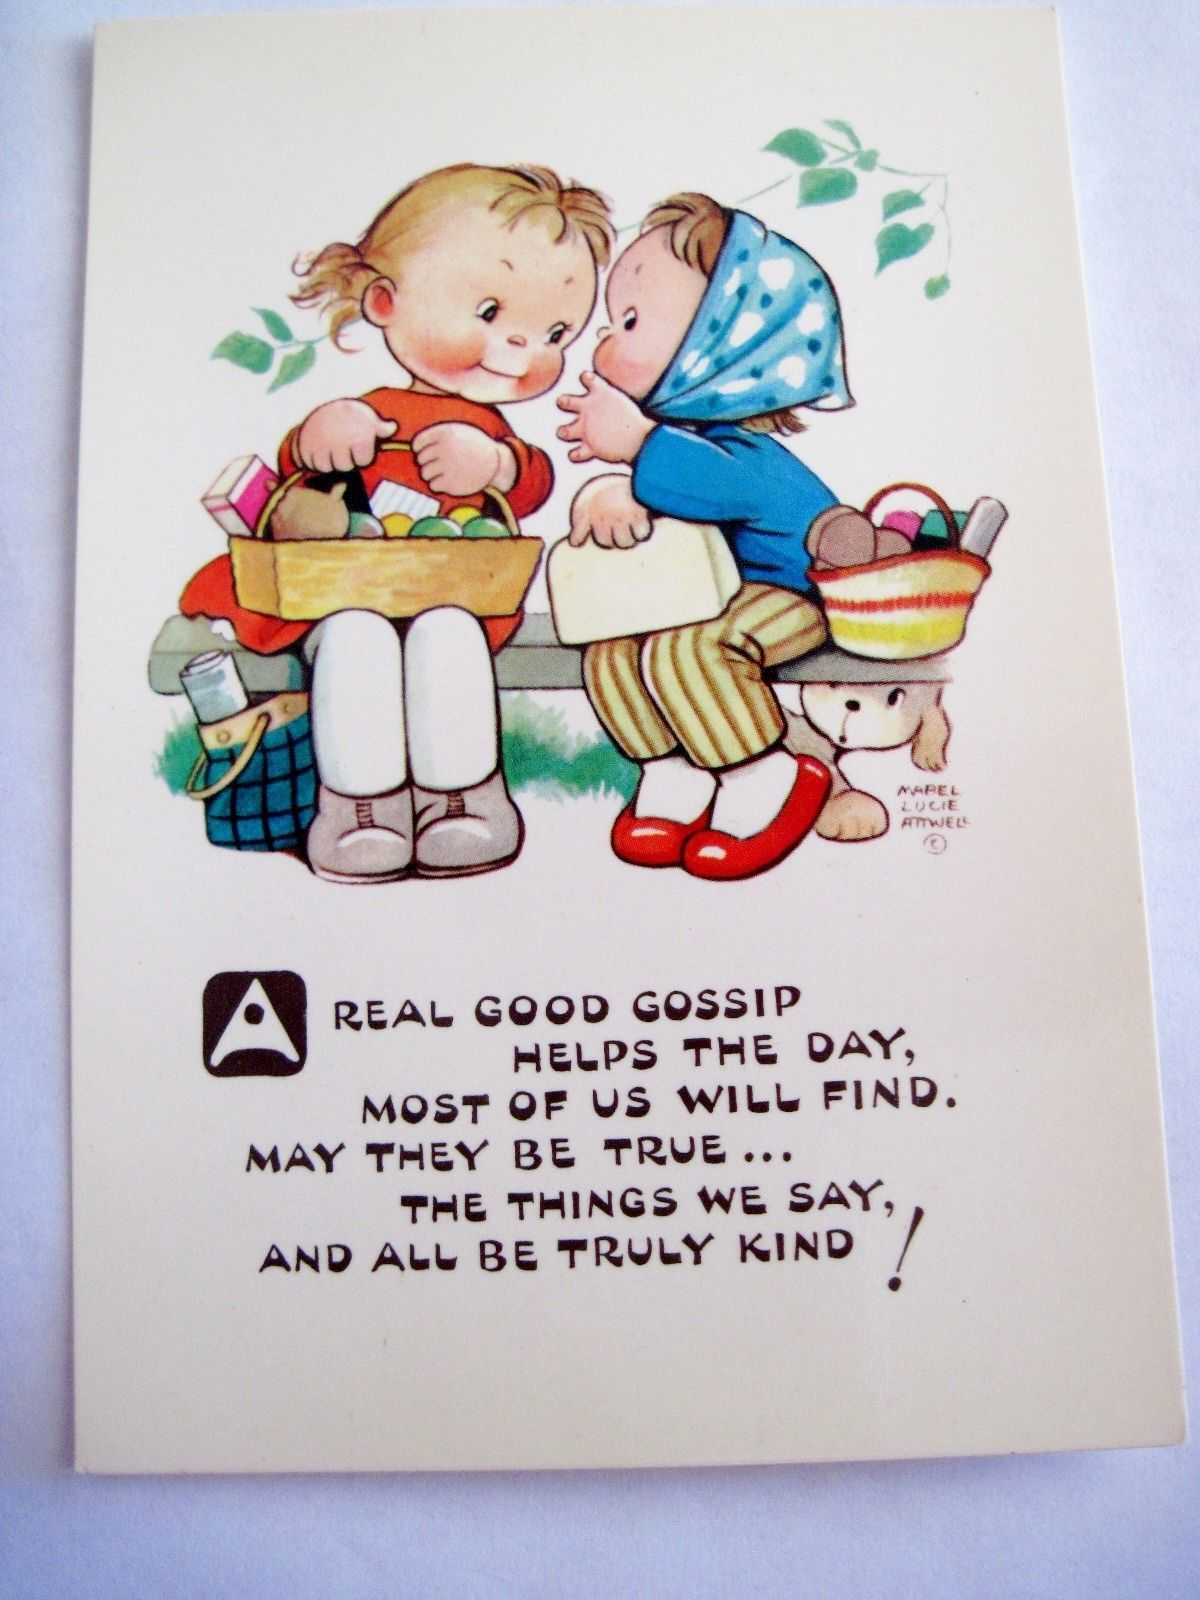 Precious Mabel Lucie Attwell Postcard w Two Friends Gossiping Artist Signed | eBay   Areal good gossip helps the day, most of us will find.May they                  lb xxx.